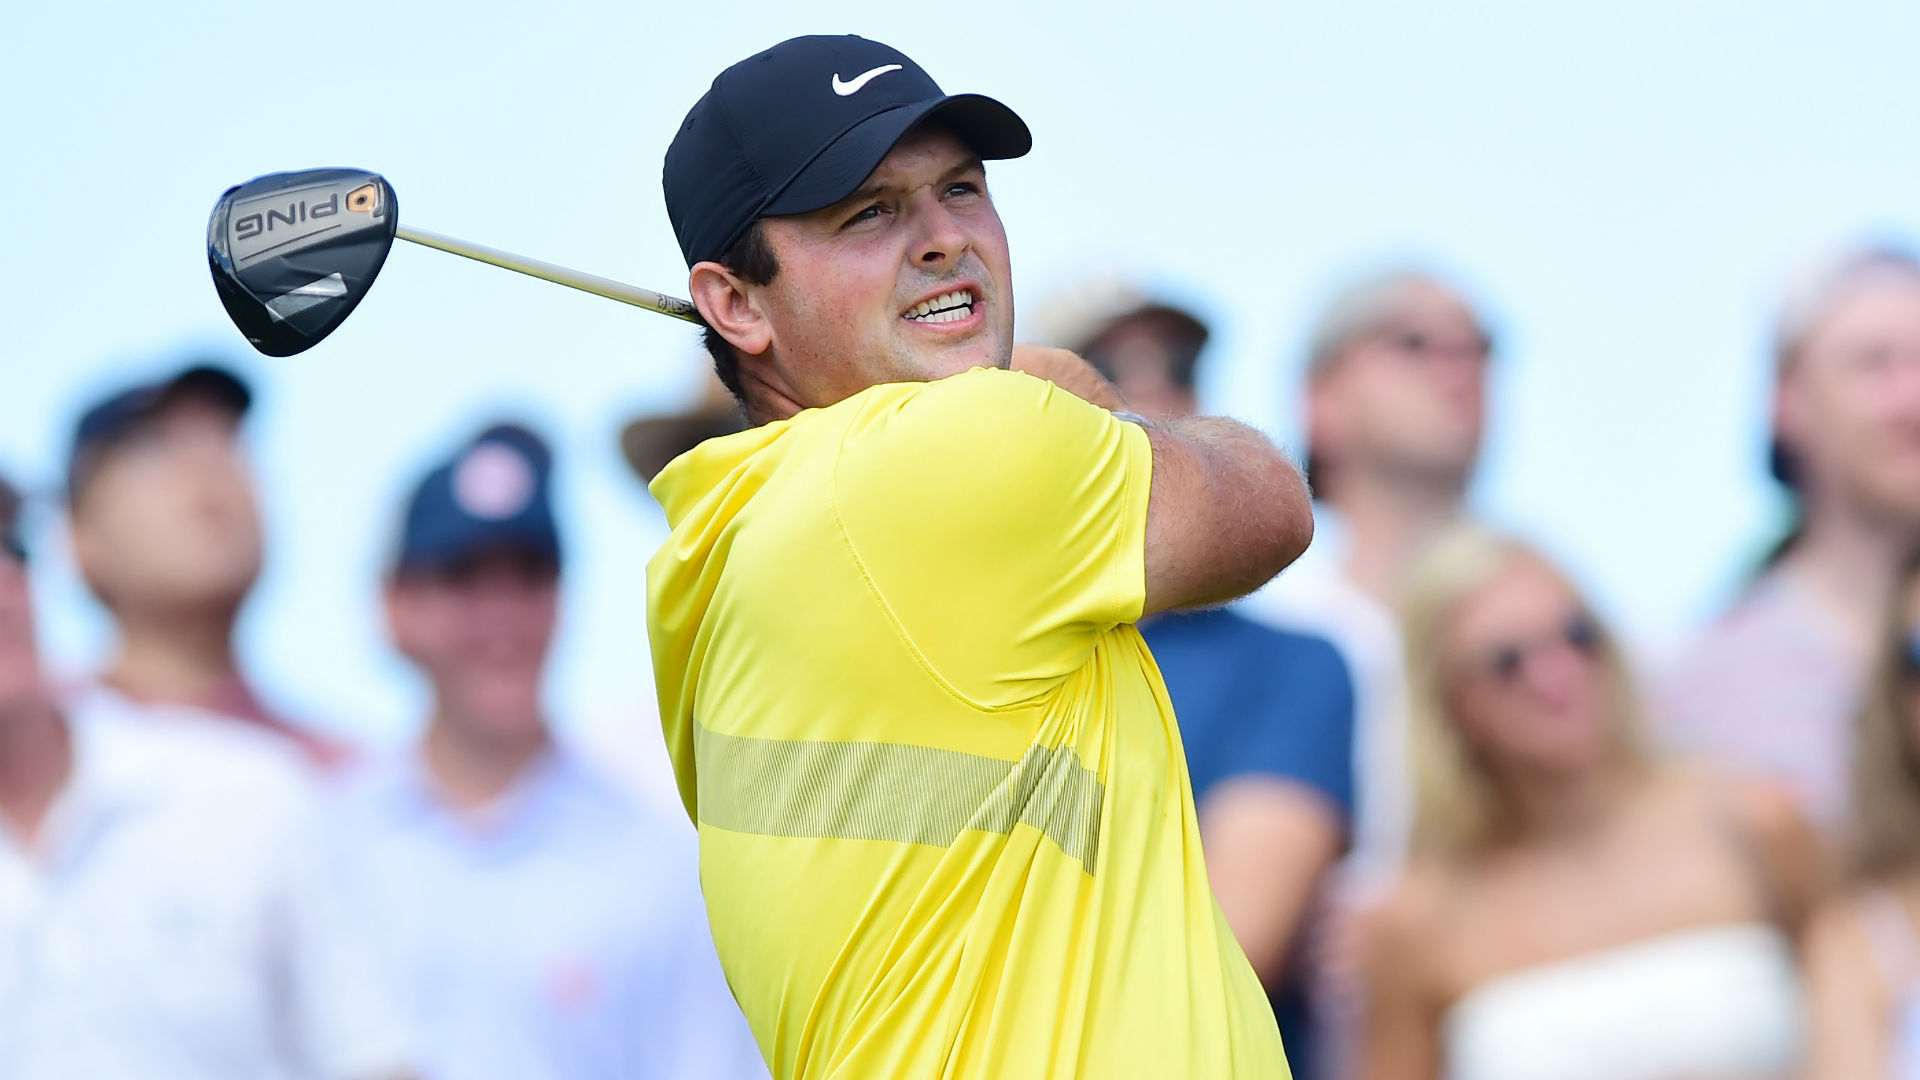 The Northern Trust: Patrick Reed moves into lead after Round 3